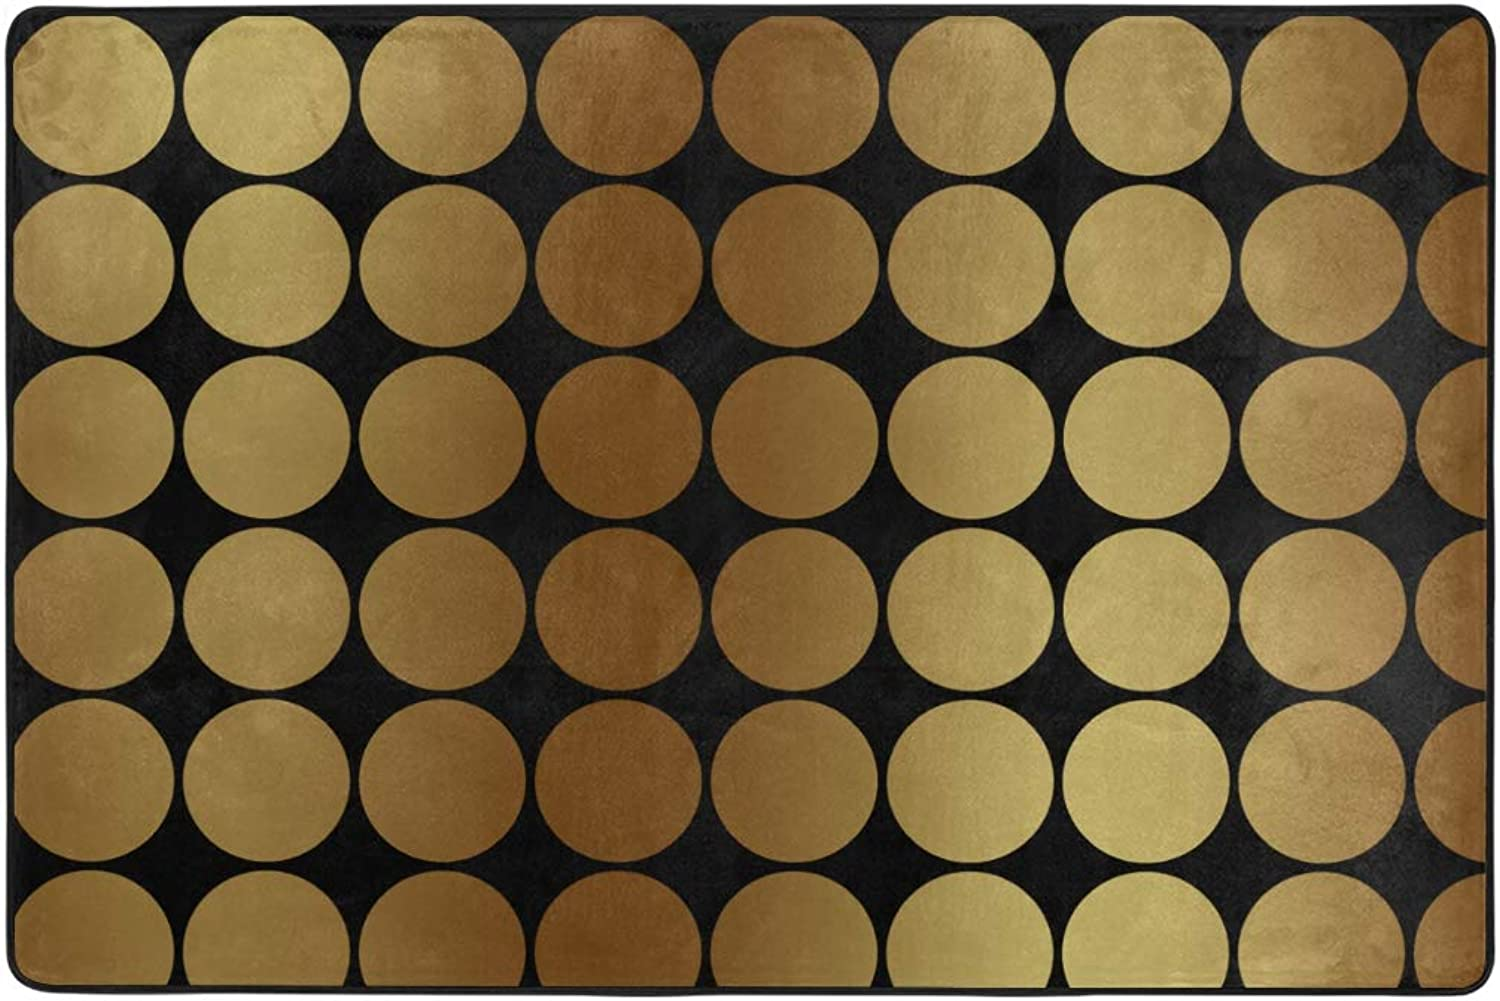 MONTOJ gold Dots Weathertech Floor mats Area Rugs for Living Room Bedroom Home Decoration Carpet Doormat Wearproof